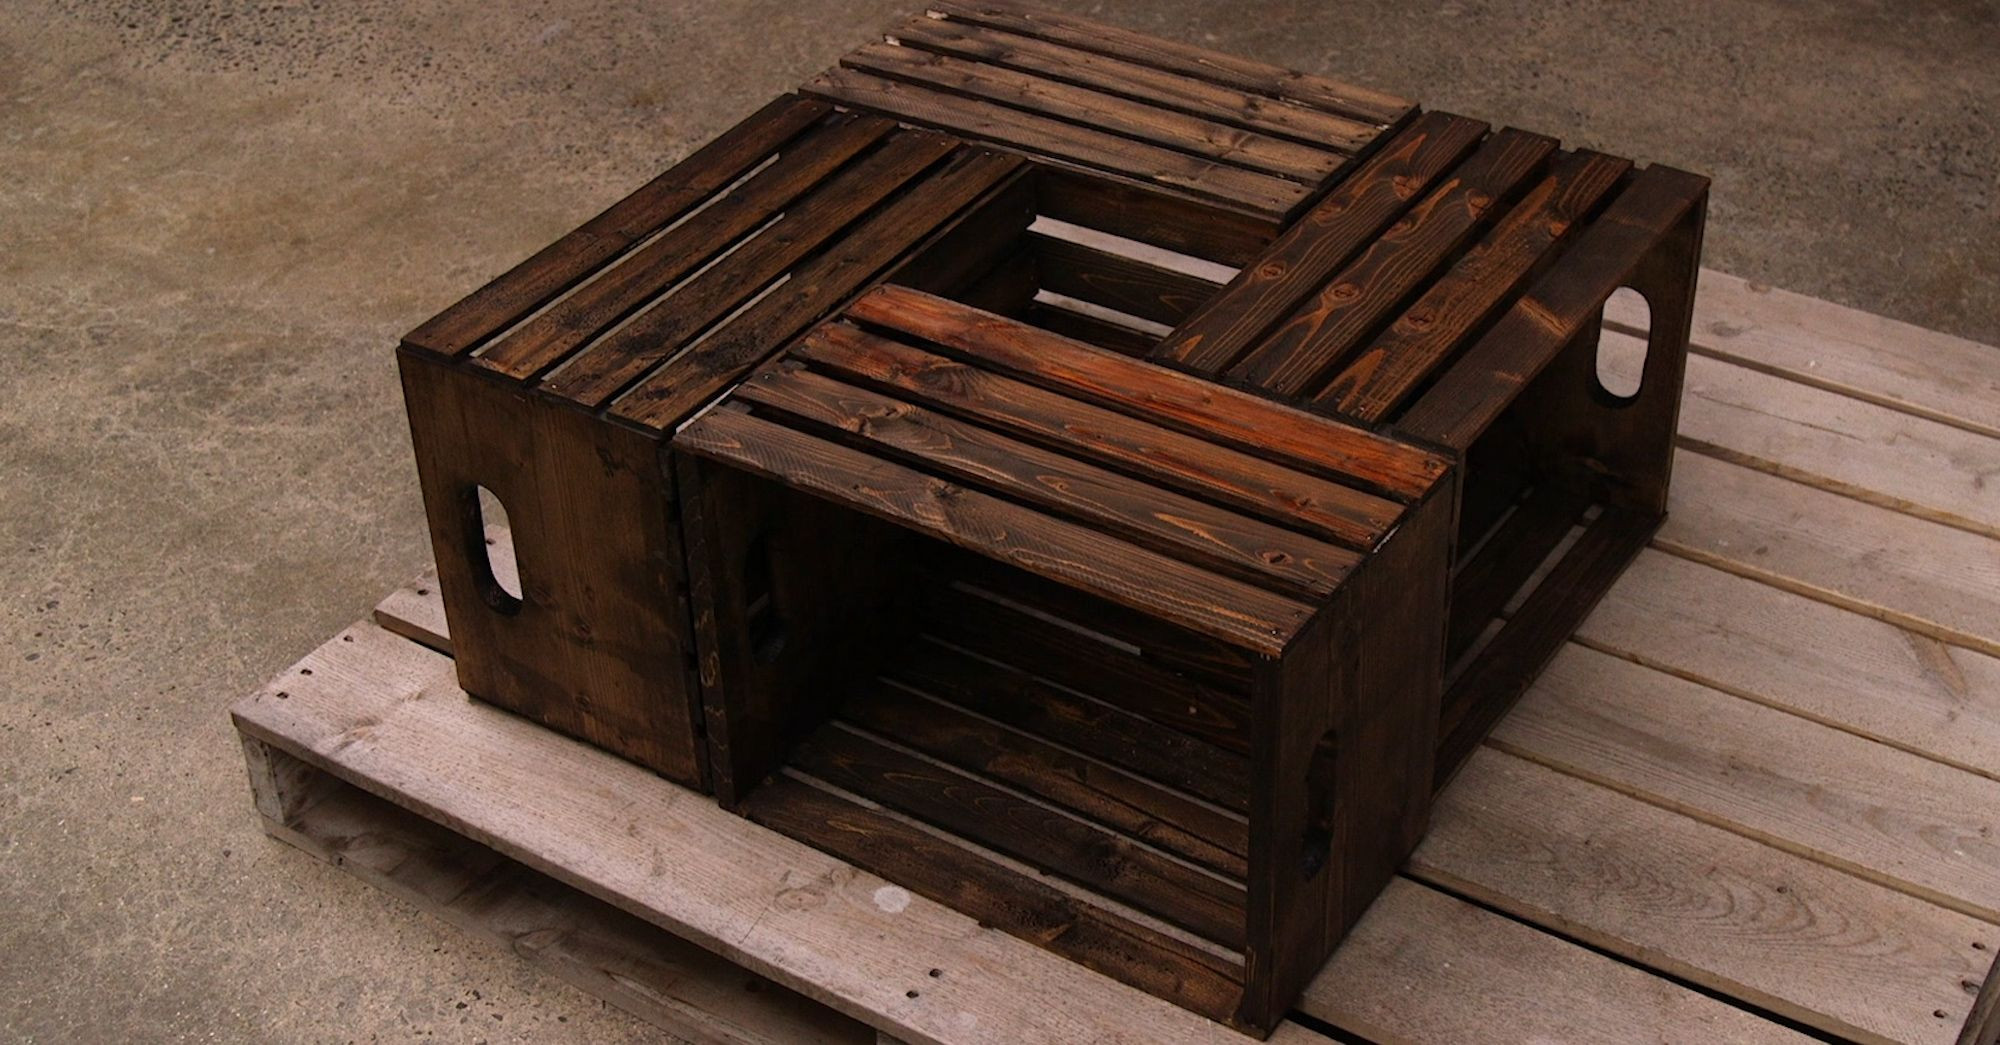 Best ideas about Wood Crate Coffee Table . Save or Pin DIY Wooden Crate Coffee Table Now.